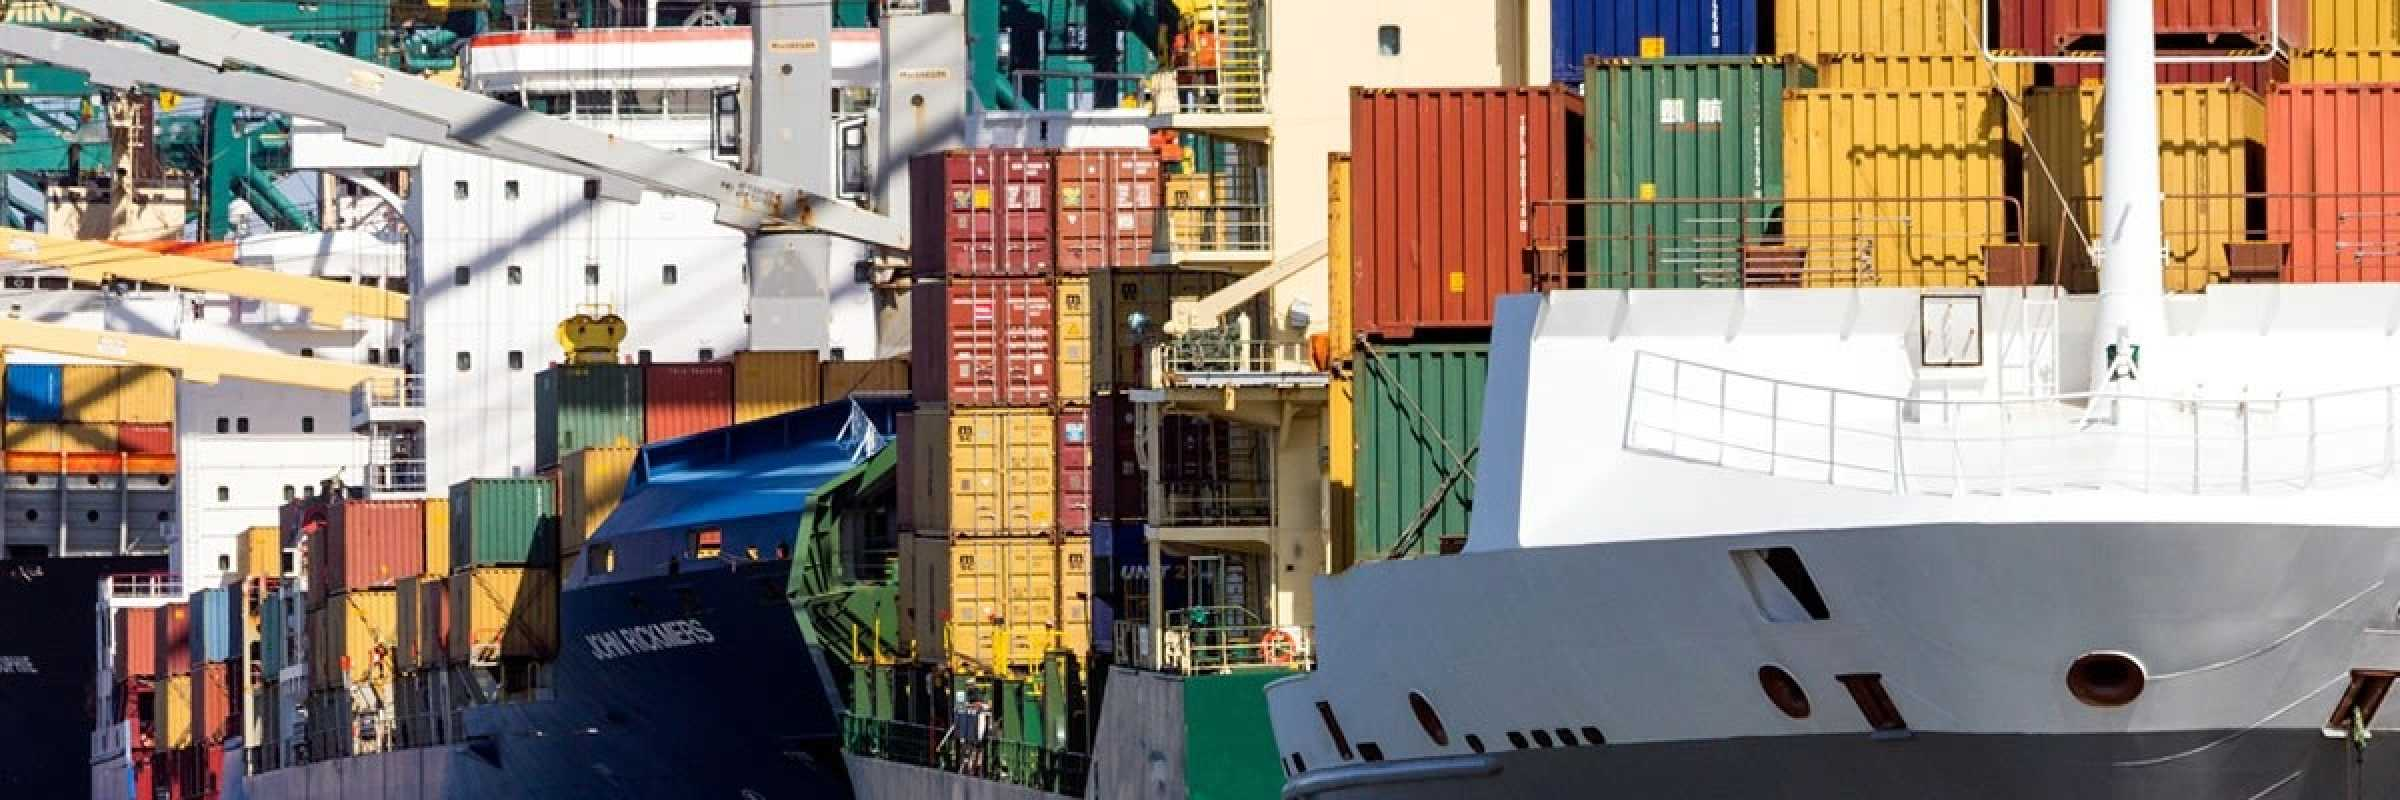 Antwerp Port Authority goes for sustainable energy policy